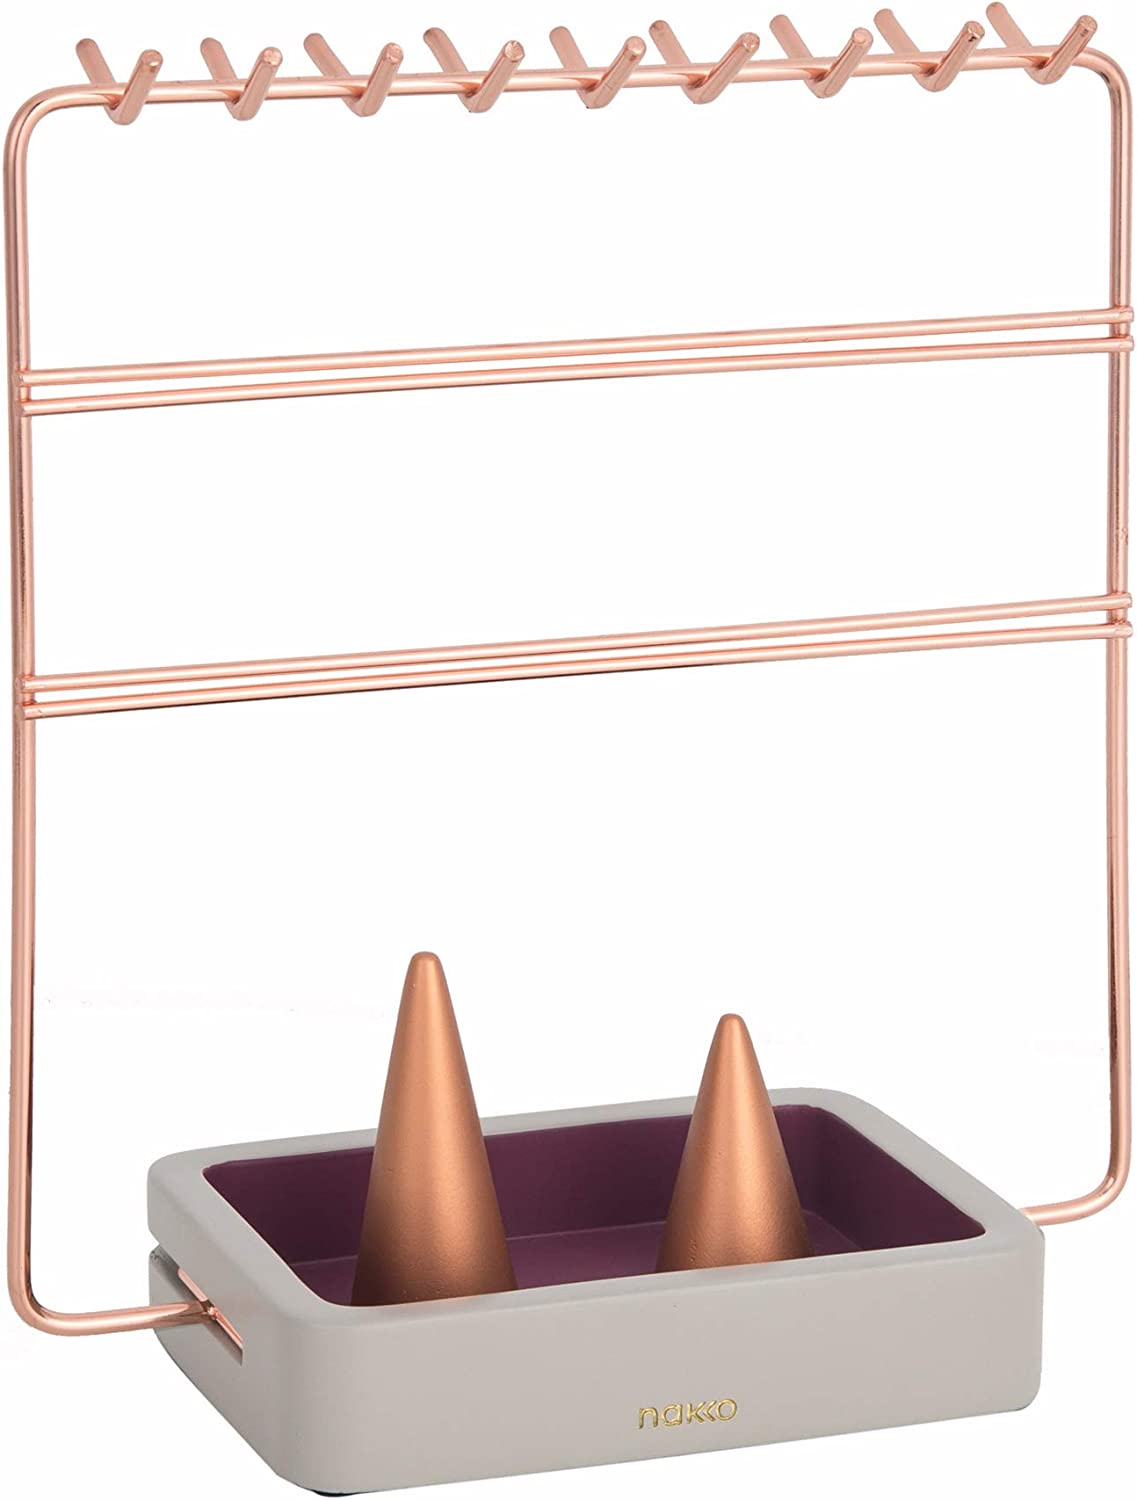 Amazon Com Nakko Modern Jewelry Organizer Gold Metal 3 Tier Necklace And Earring Display Rack With Ring Holder Rose Gold Gray Home Kitchen